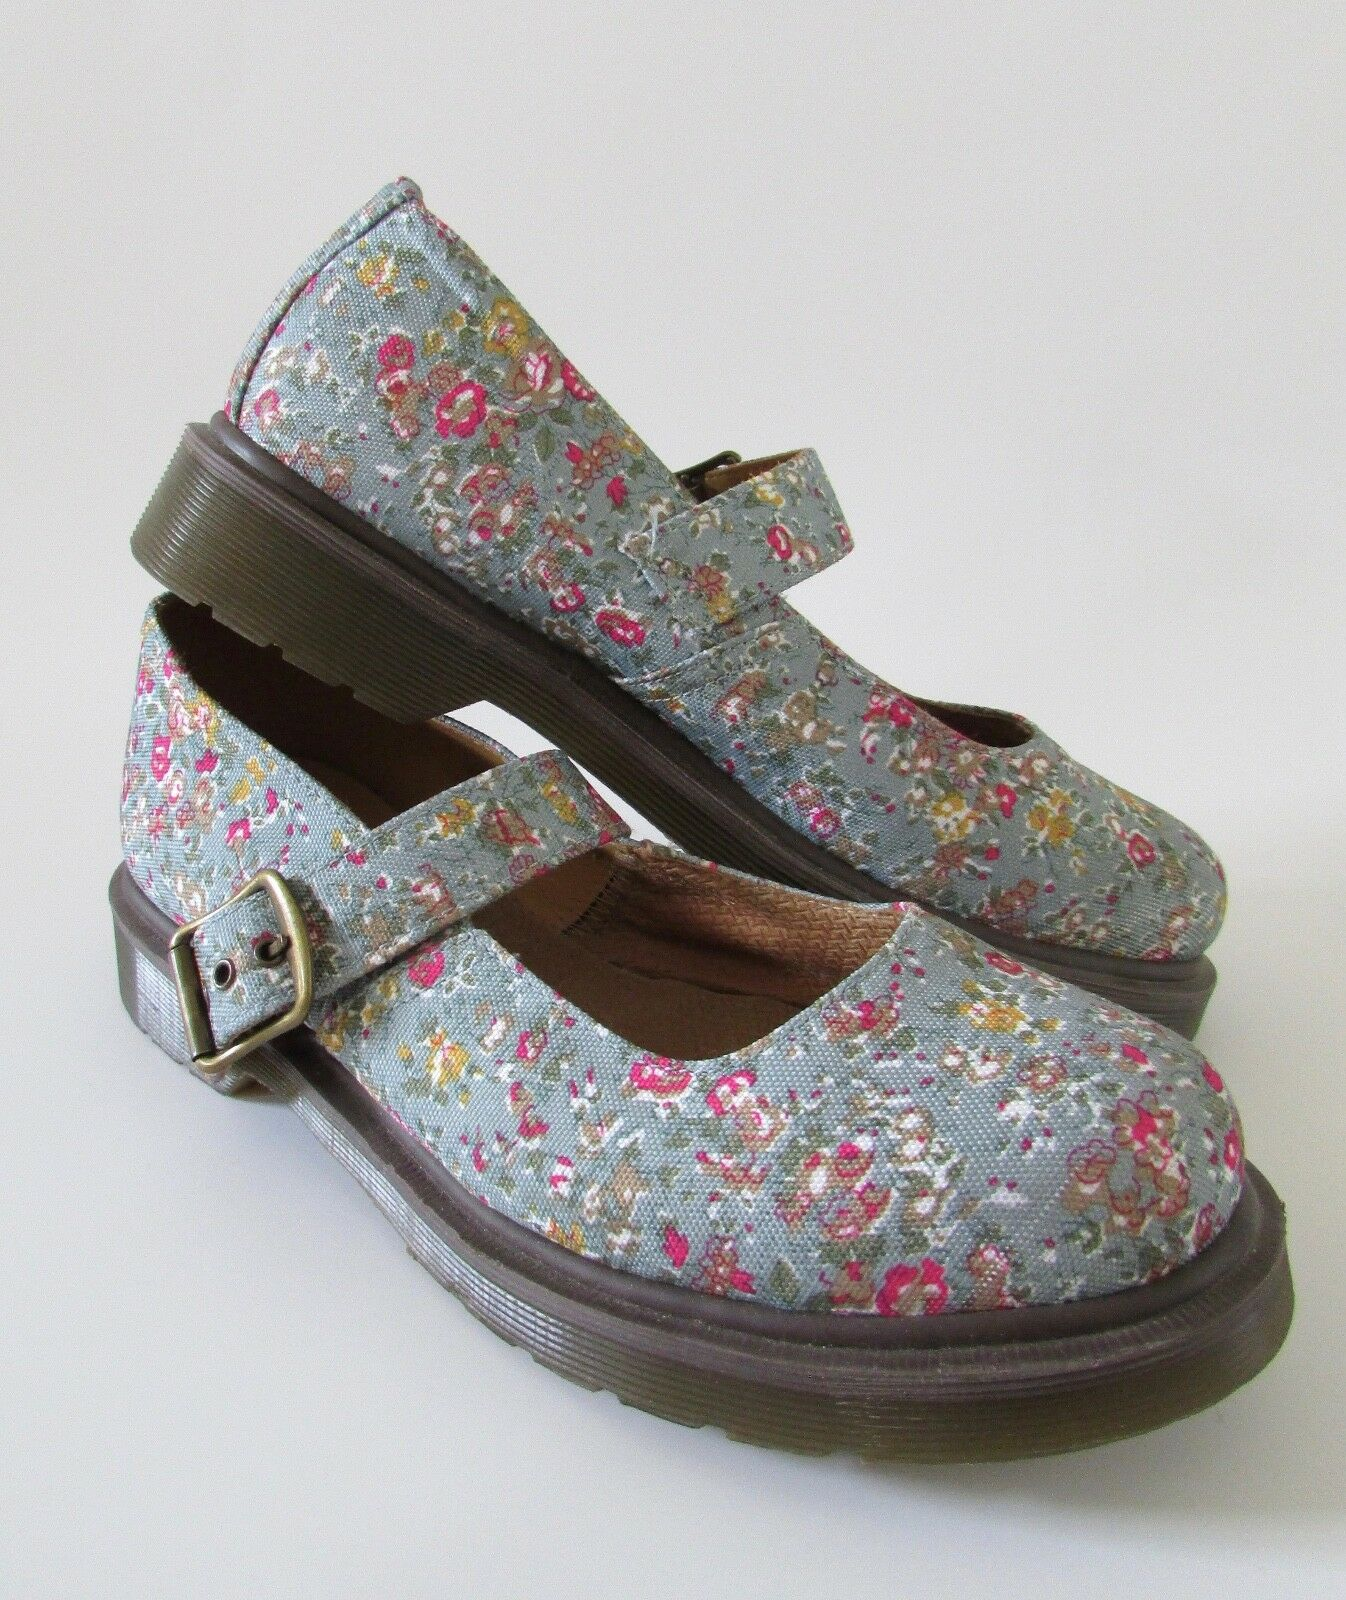 Senza tasse NEW NEW NEW DR MARTENS  Mary  AW004 blu Floral Canvas Mary Janes US 9  Miglior prezzo